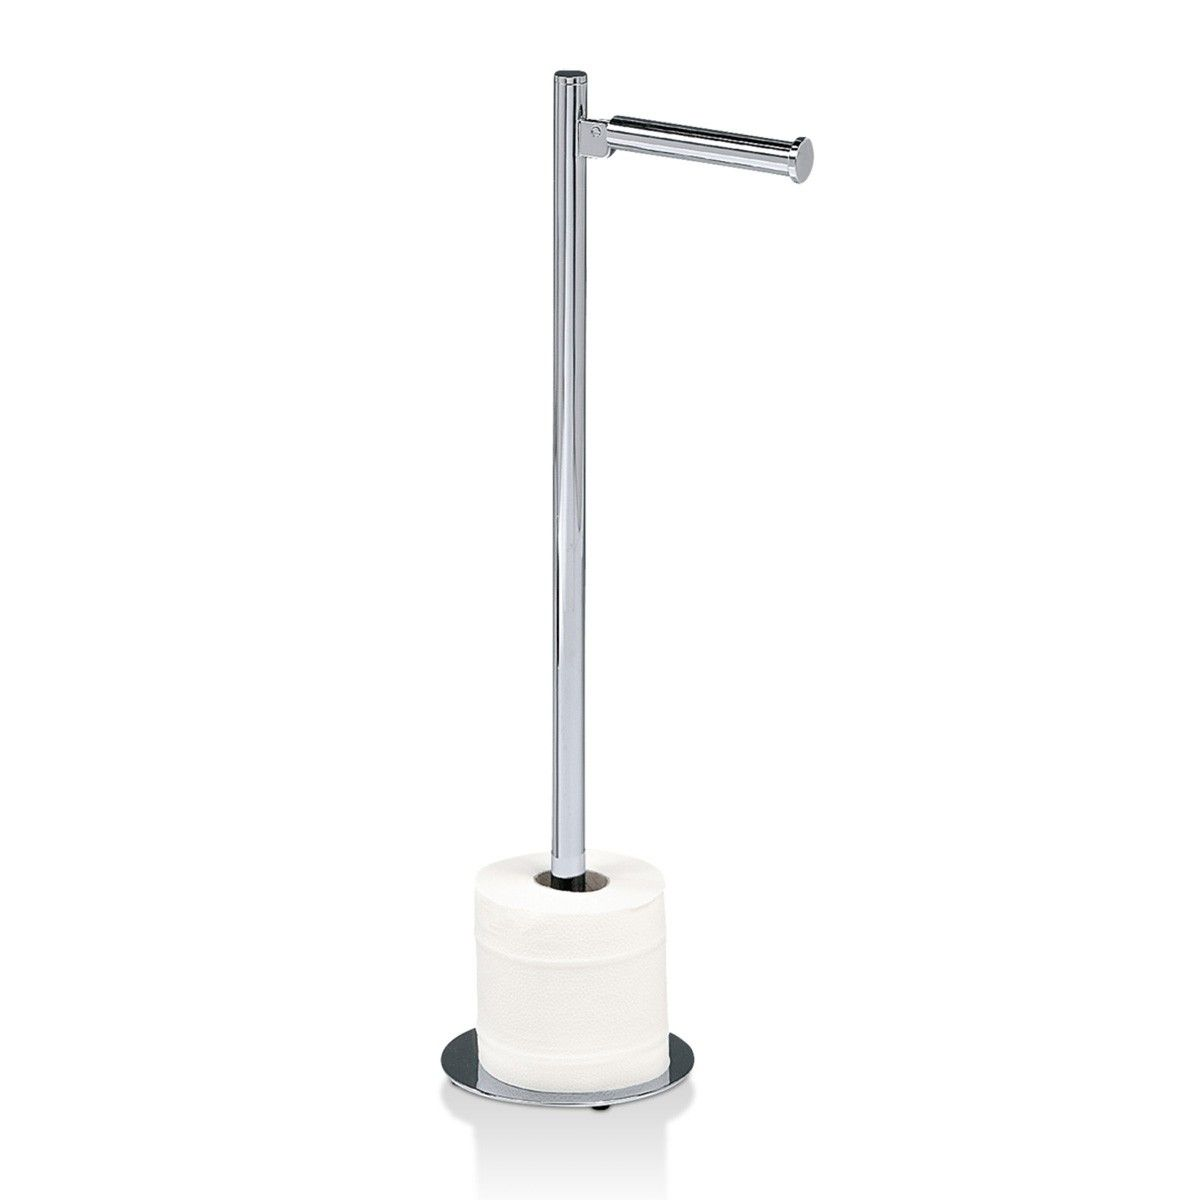 Dw 11 Free Standing Toilet Paper Holder In Chrome Modo Bath Free Standing Toilet Paper Holder Toilet Paper Holder Toilet Paper